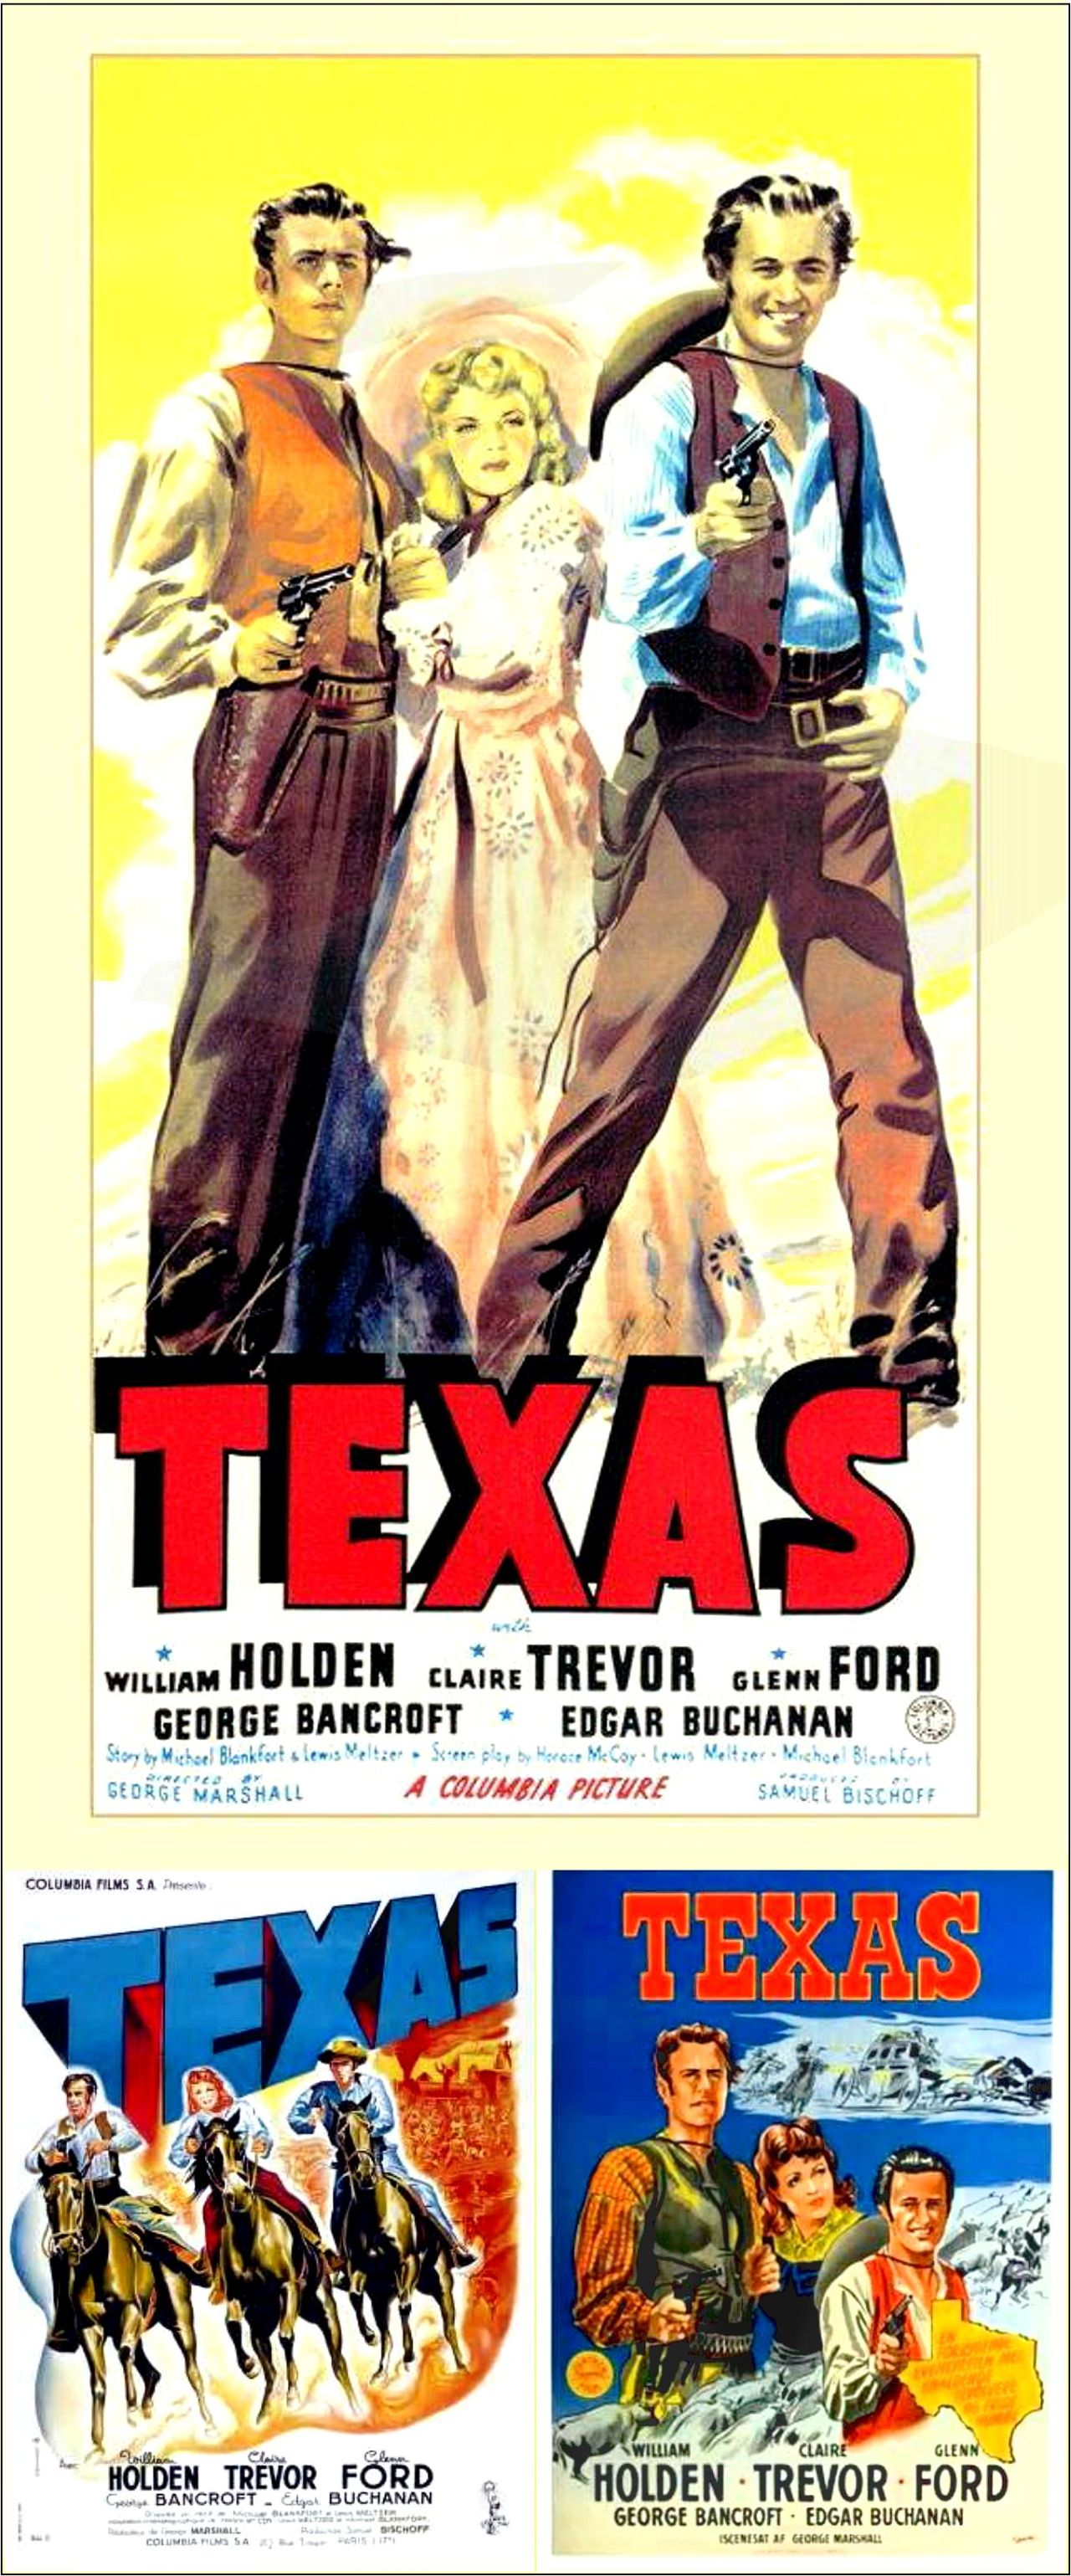 Texas GLENN FORD William Holden